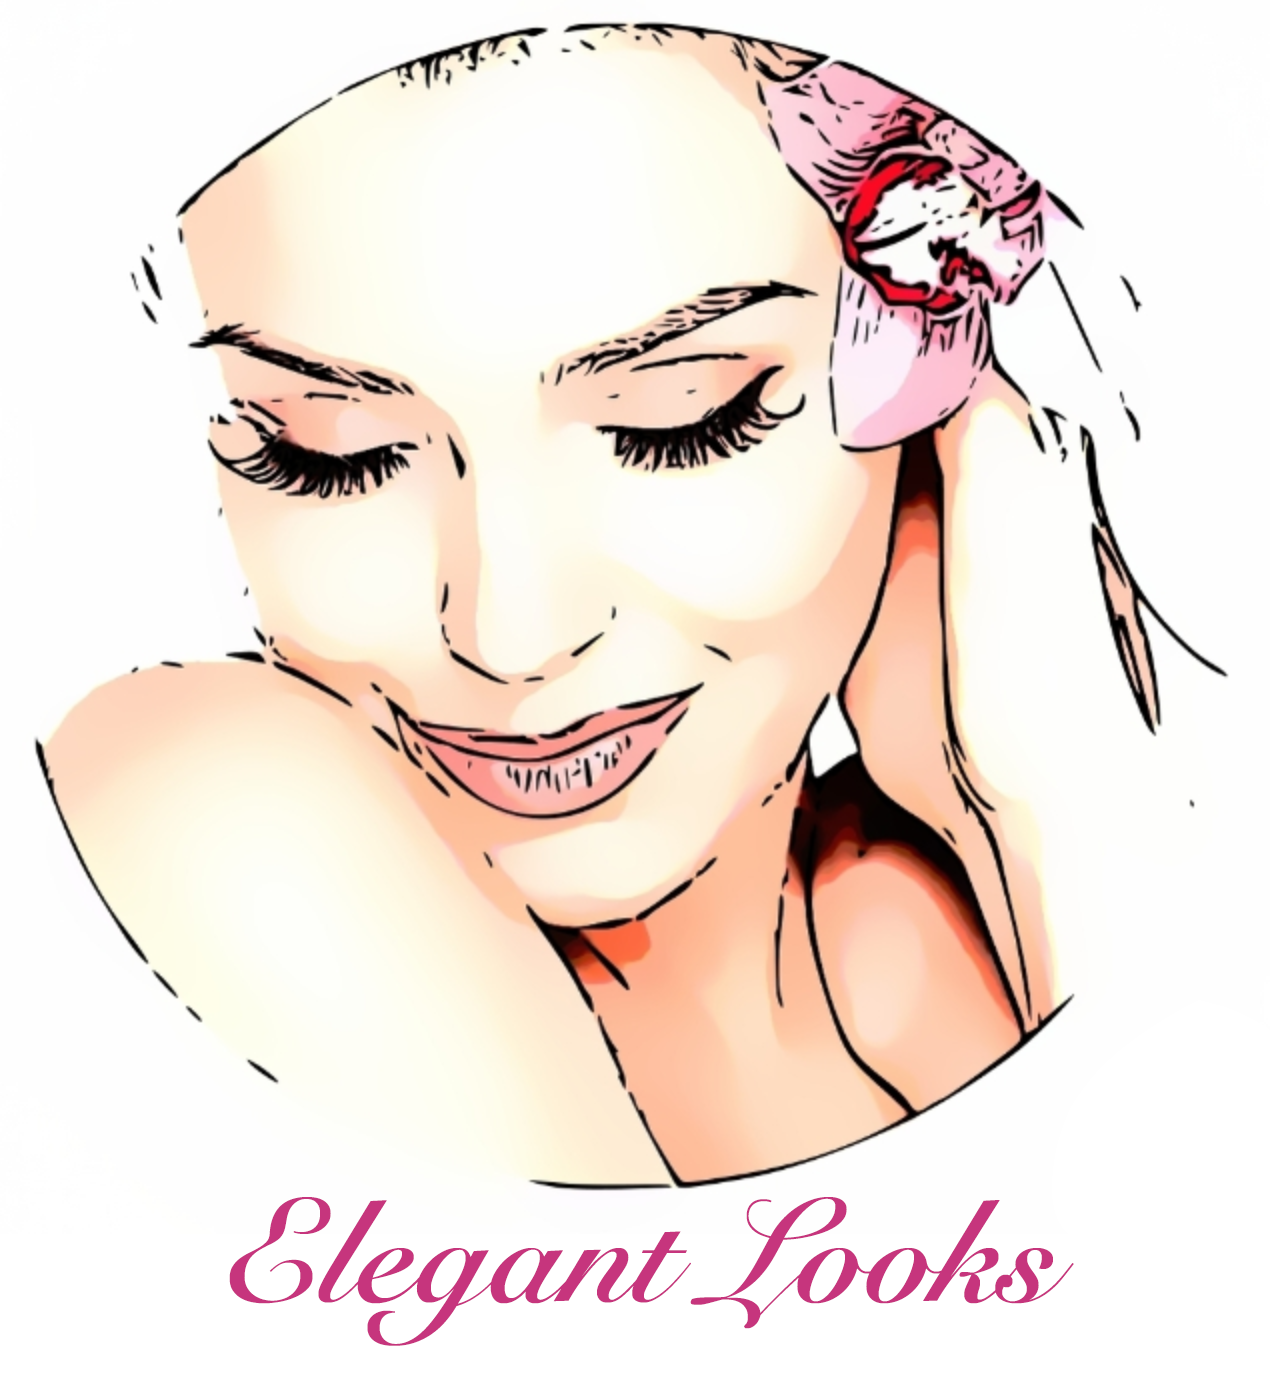 Elegant Looks Permanent Makeup